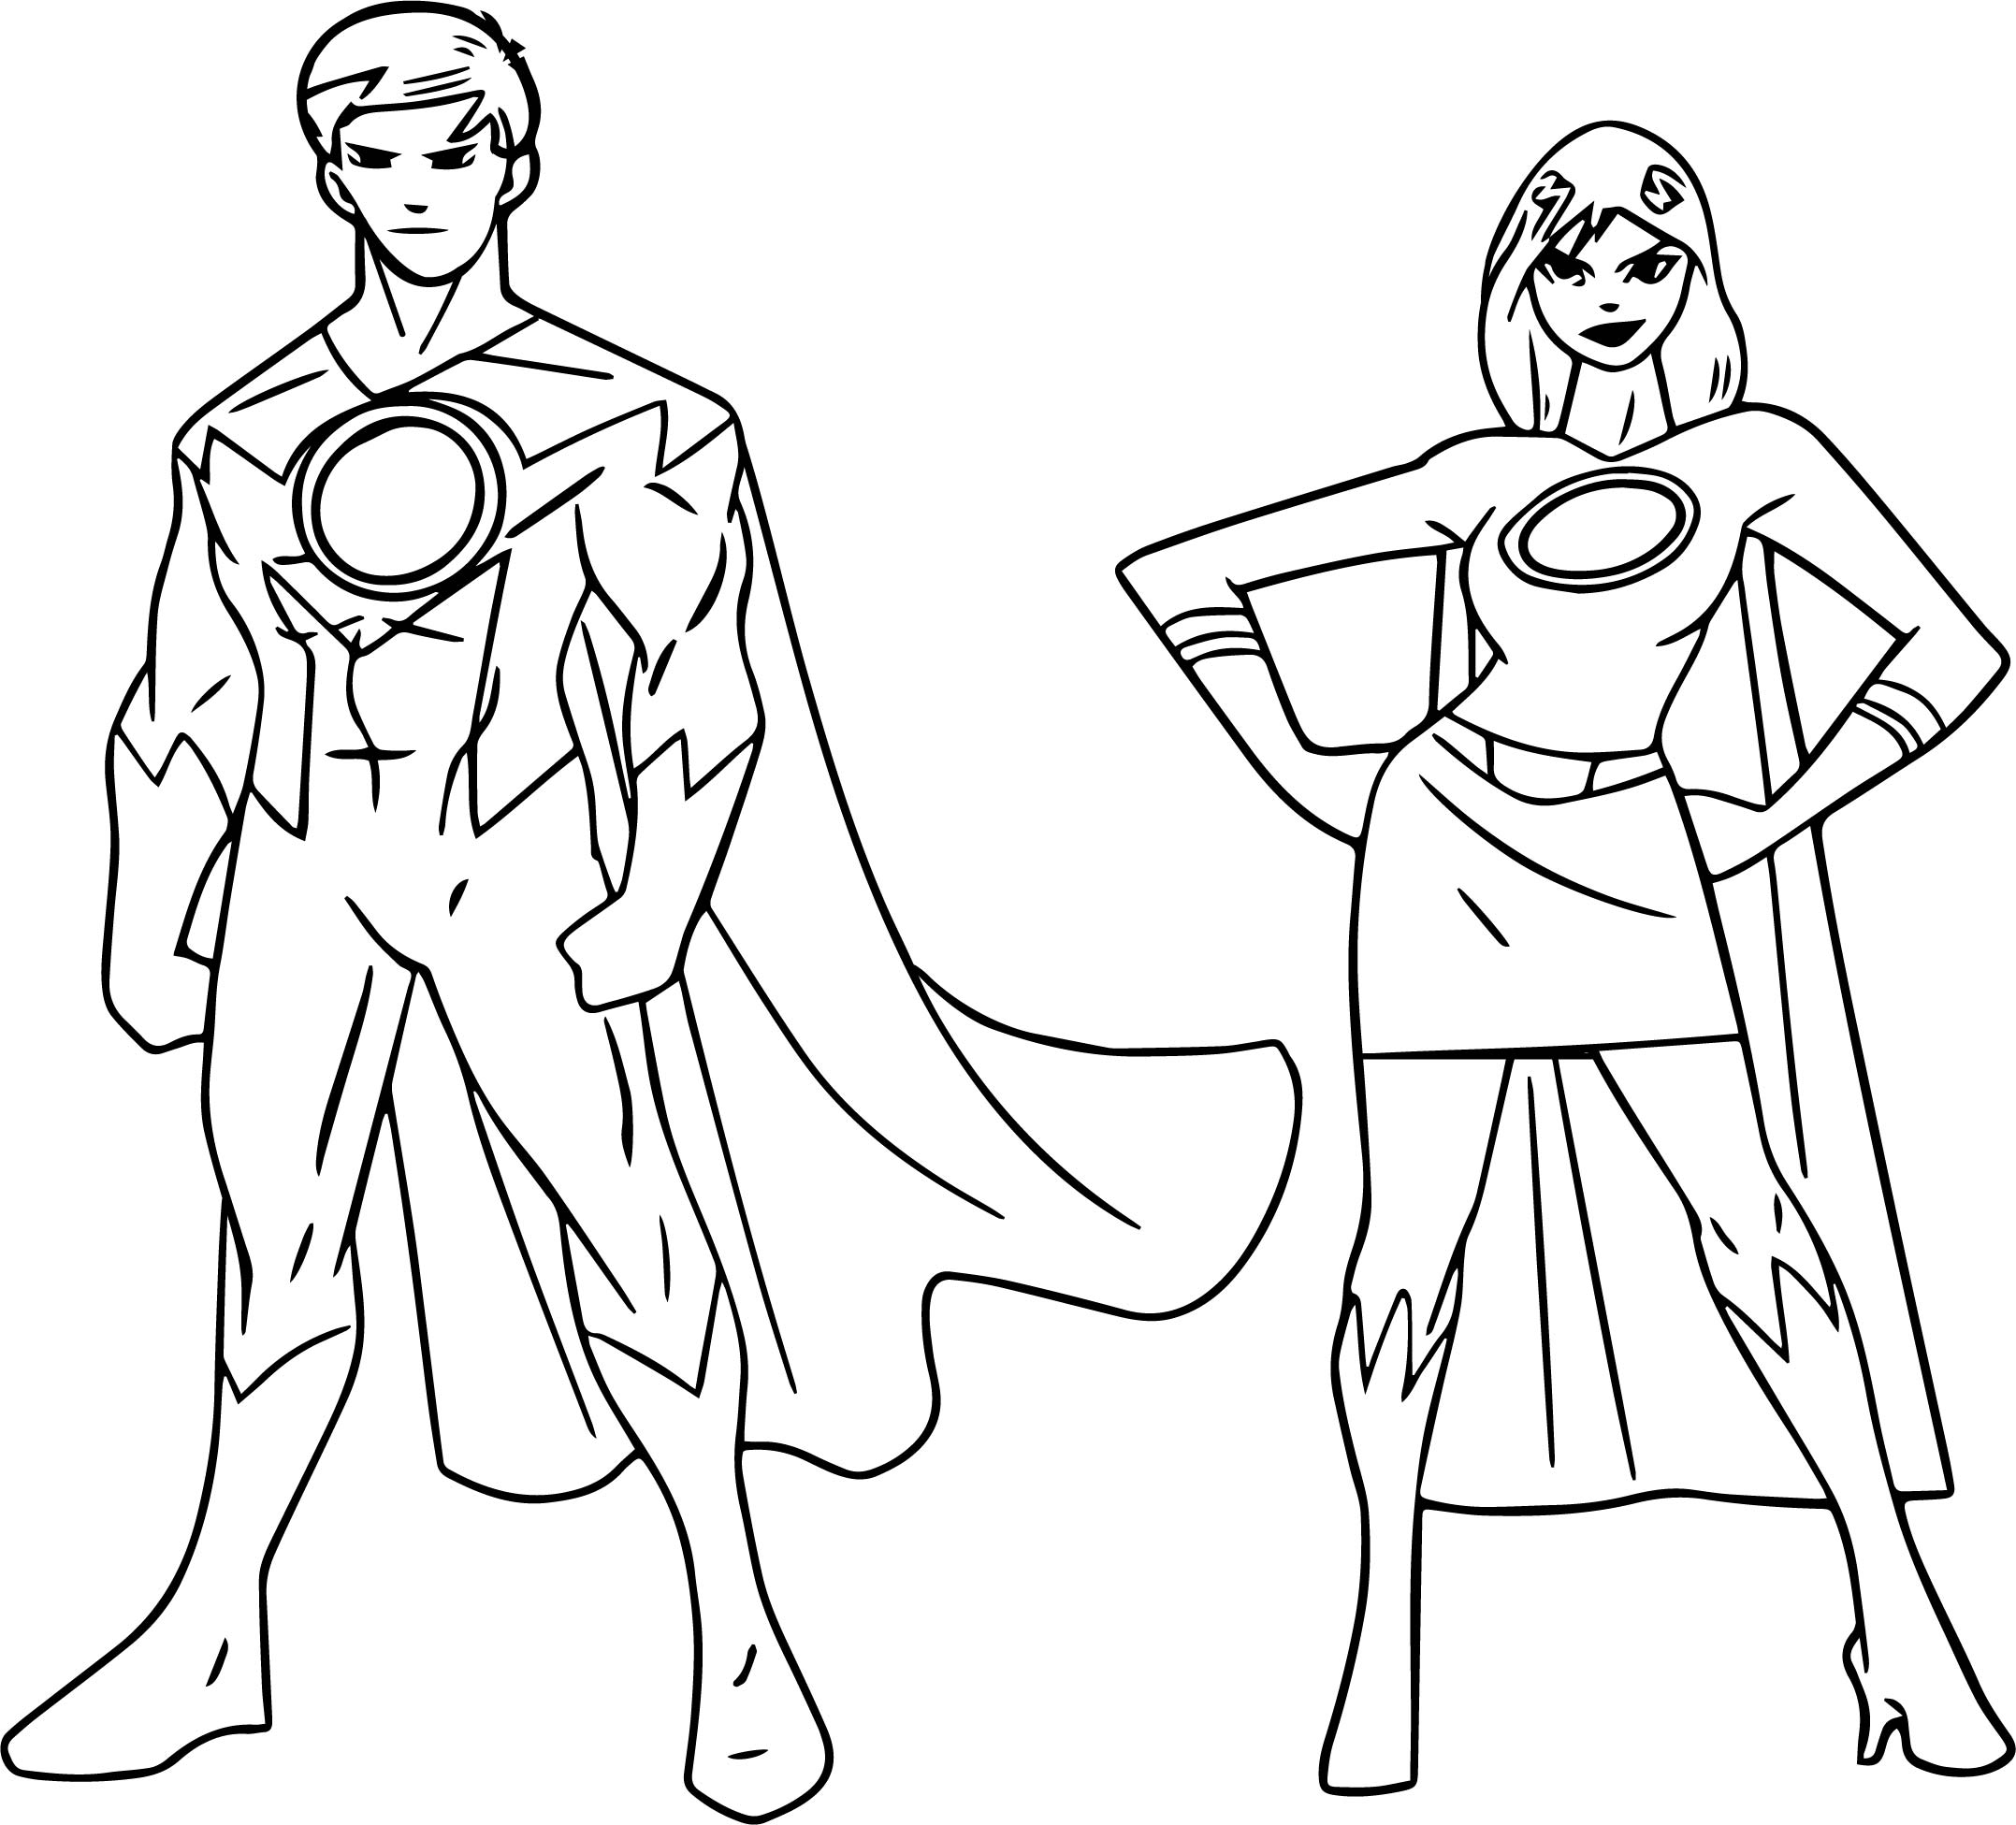 Powered superheroes super hero girl boy coloring page - Superhero dessin ...